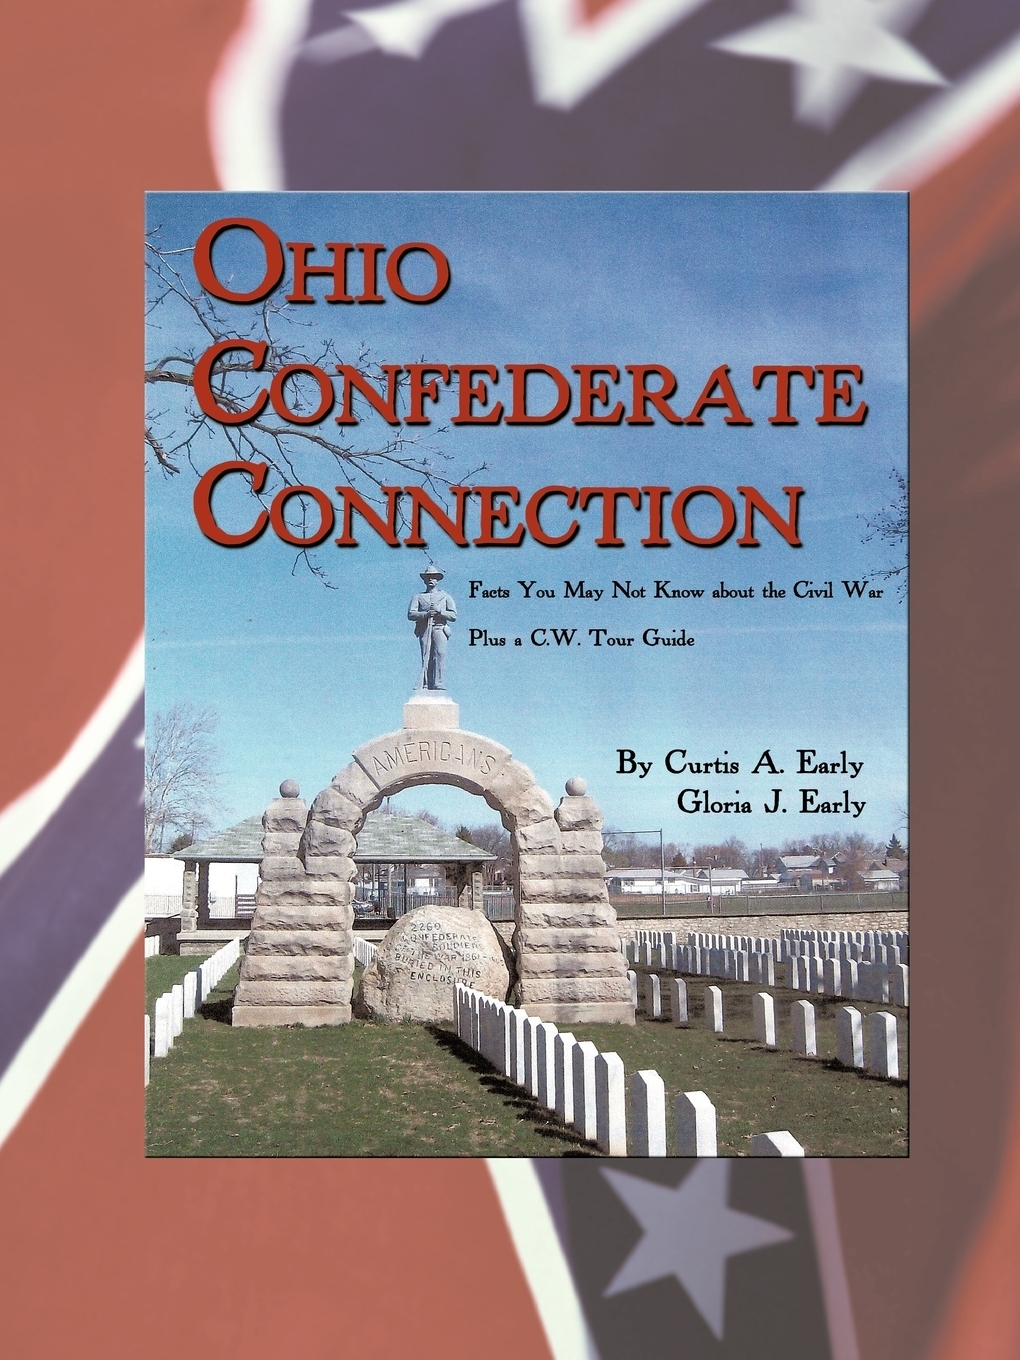 Curtis A. Early, Gloria J. Early. Ohio Confederate Connection. Facts You May Not Know about the Civil War